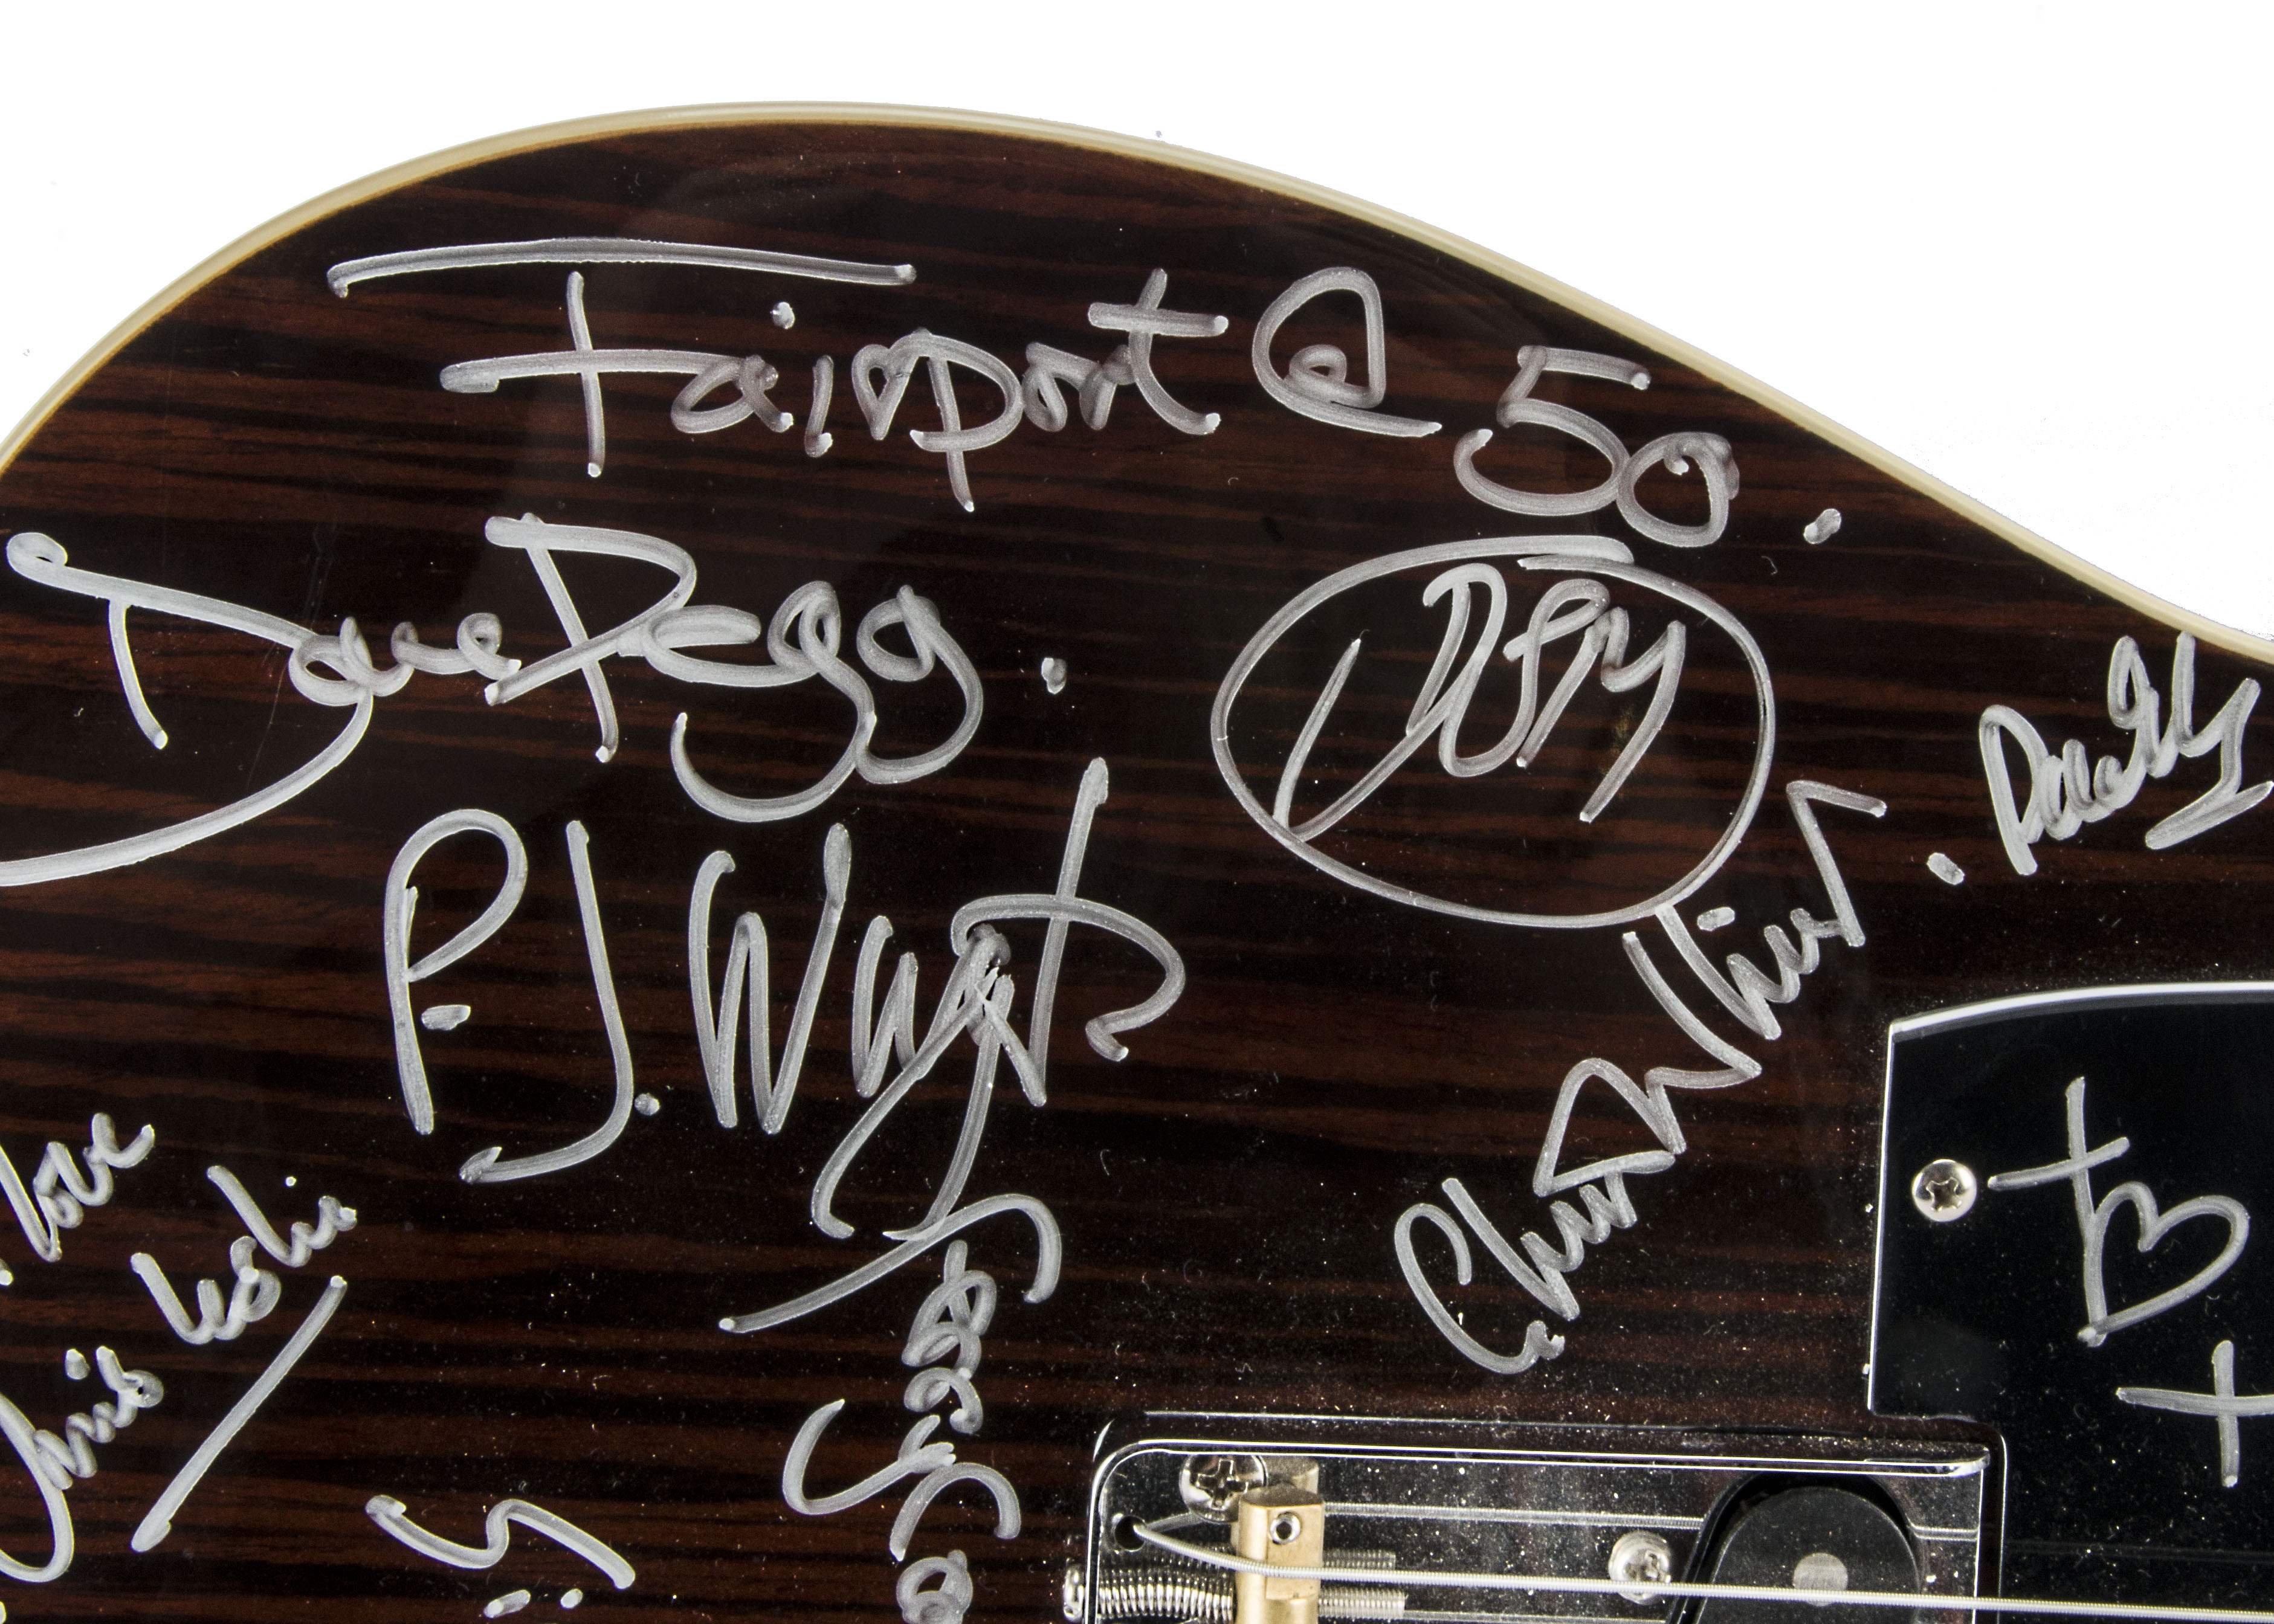 Lot 686 - Fairport Convention / Autographs, A Harvey Bentone Guitar signed by Judy Dyble, Richard Thompson,